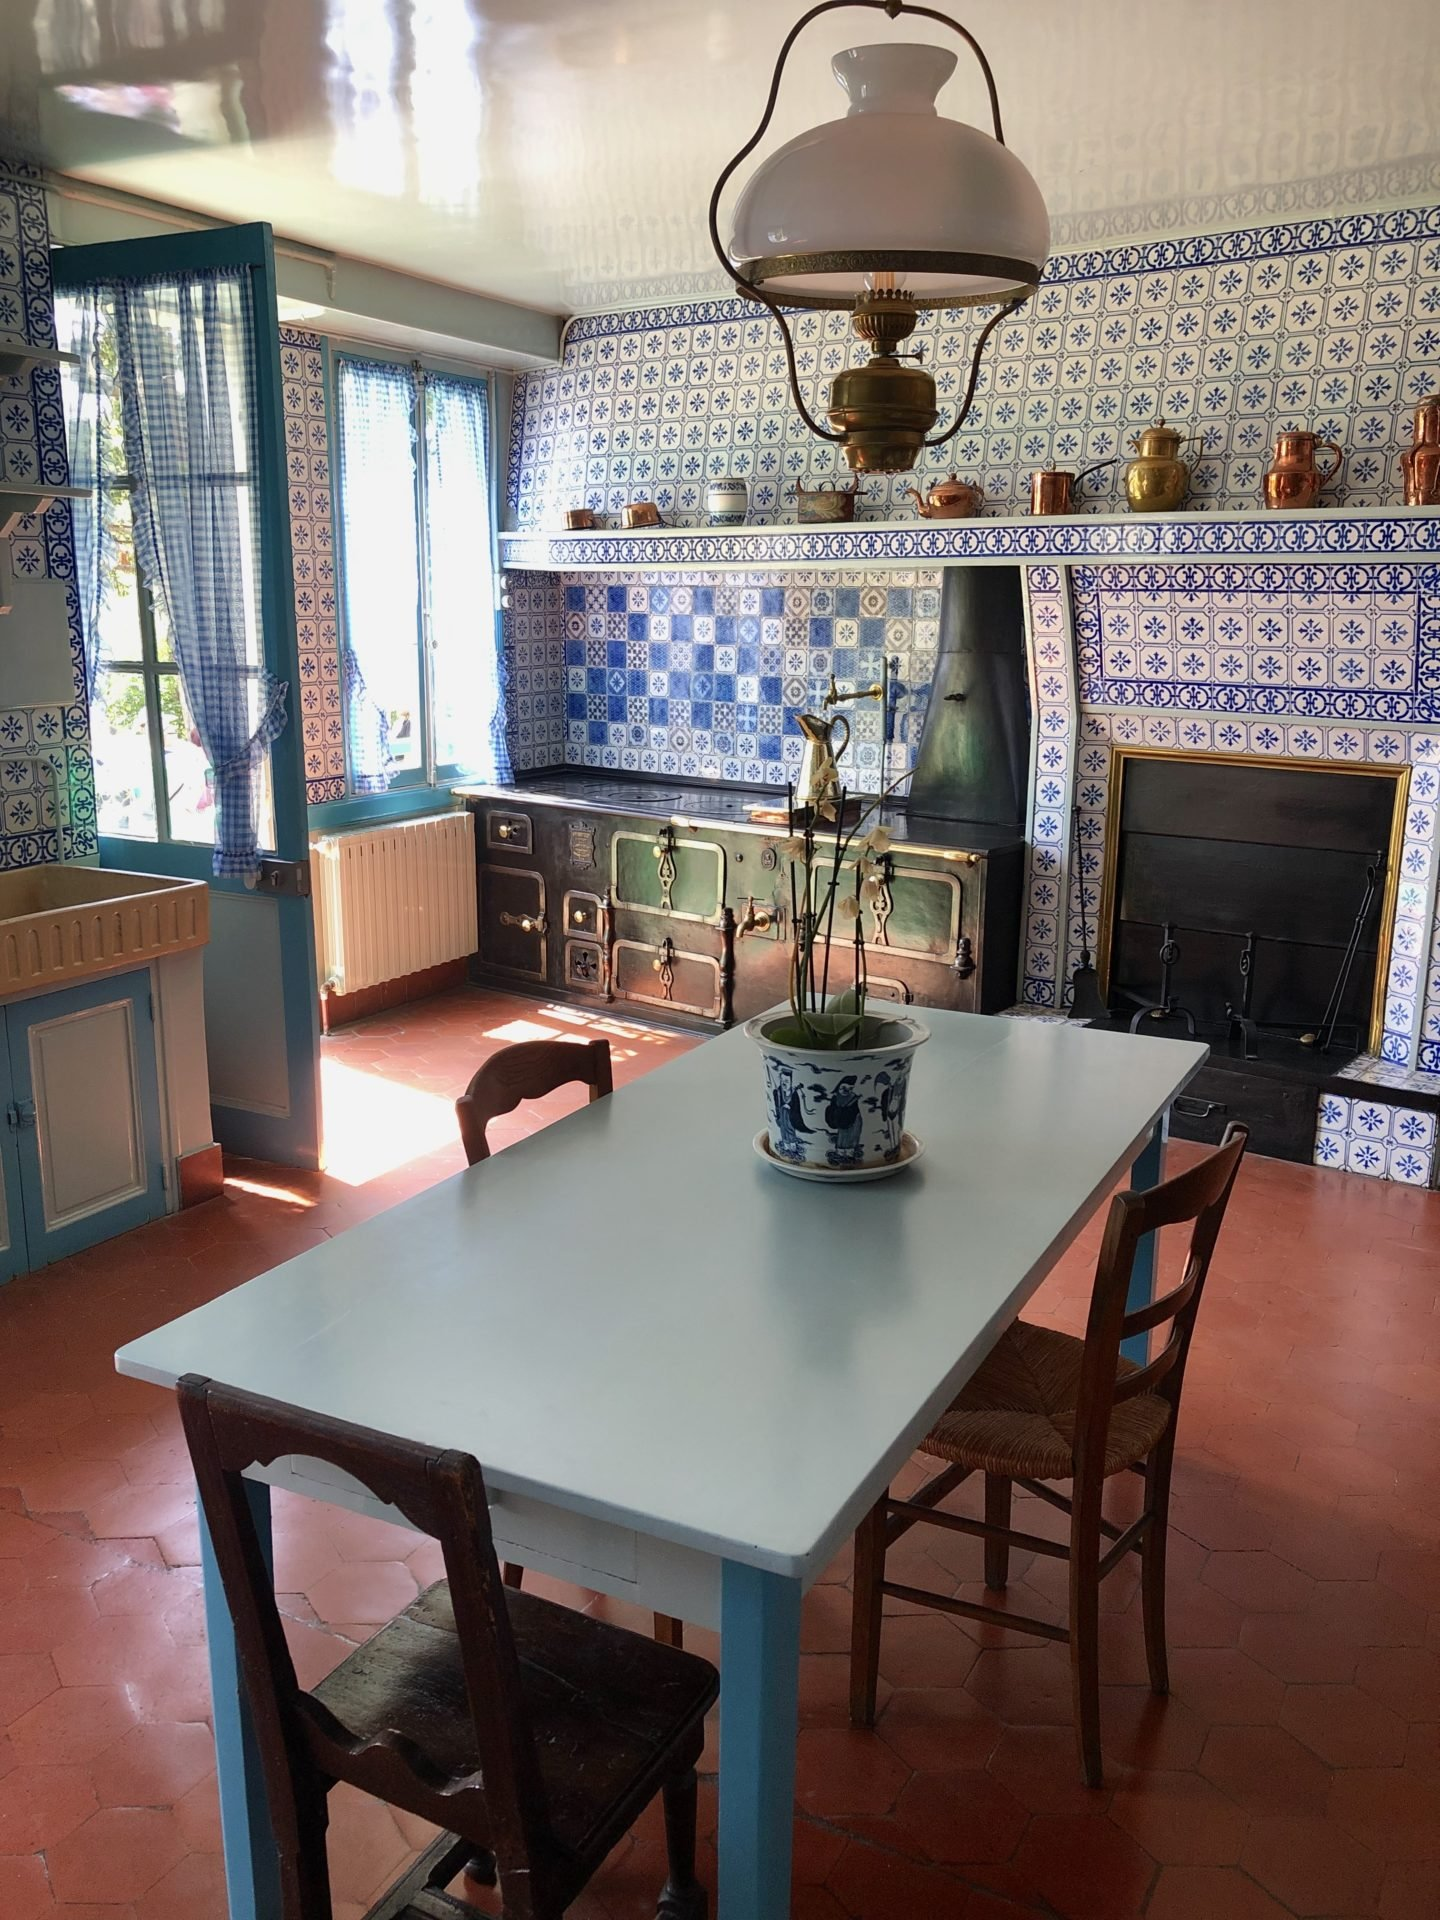 The Blue kitchen in the Monet House with tiles from Rouen. A huge oven sits in the corner.